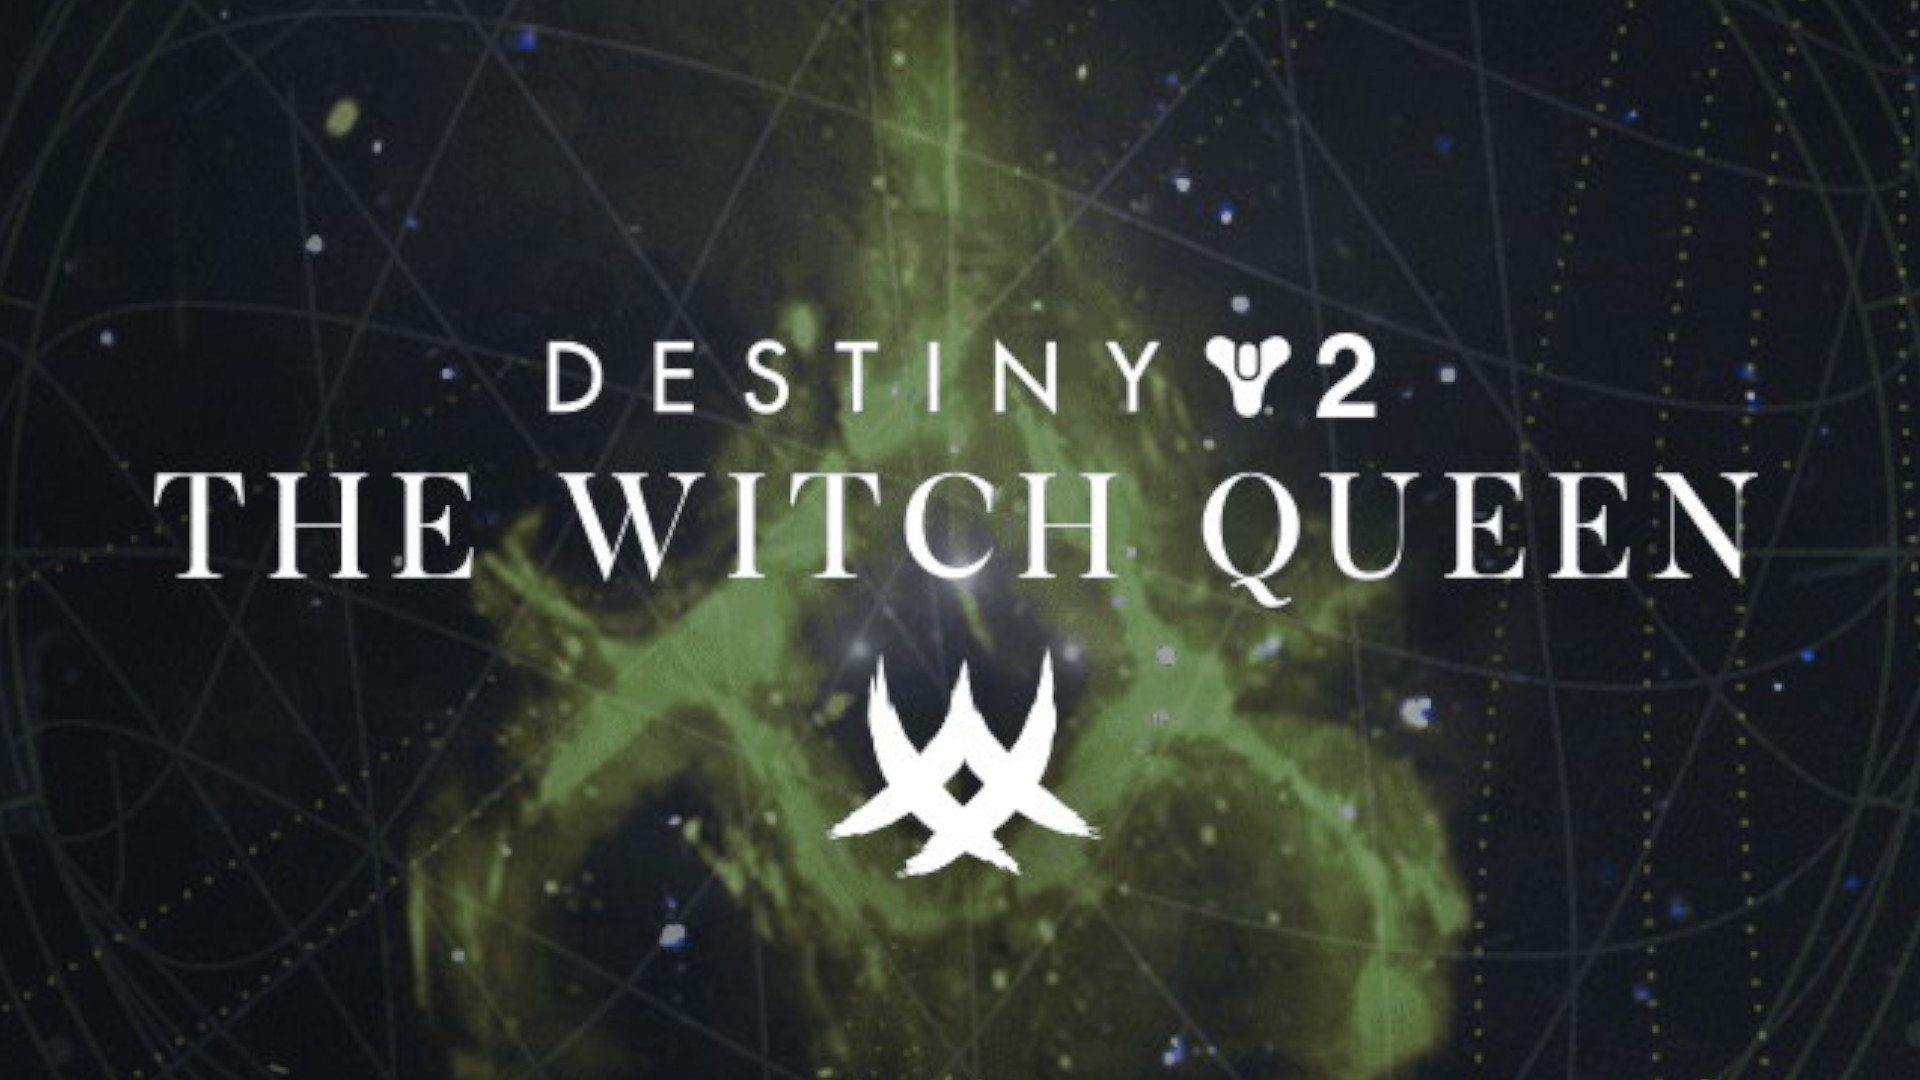 Destiny 2: The Witch Queen delayed to 2022